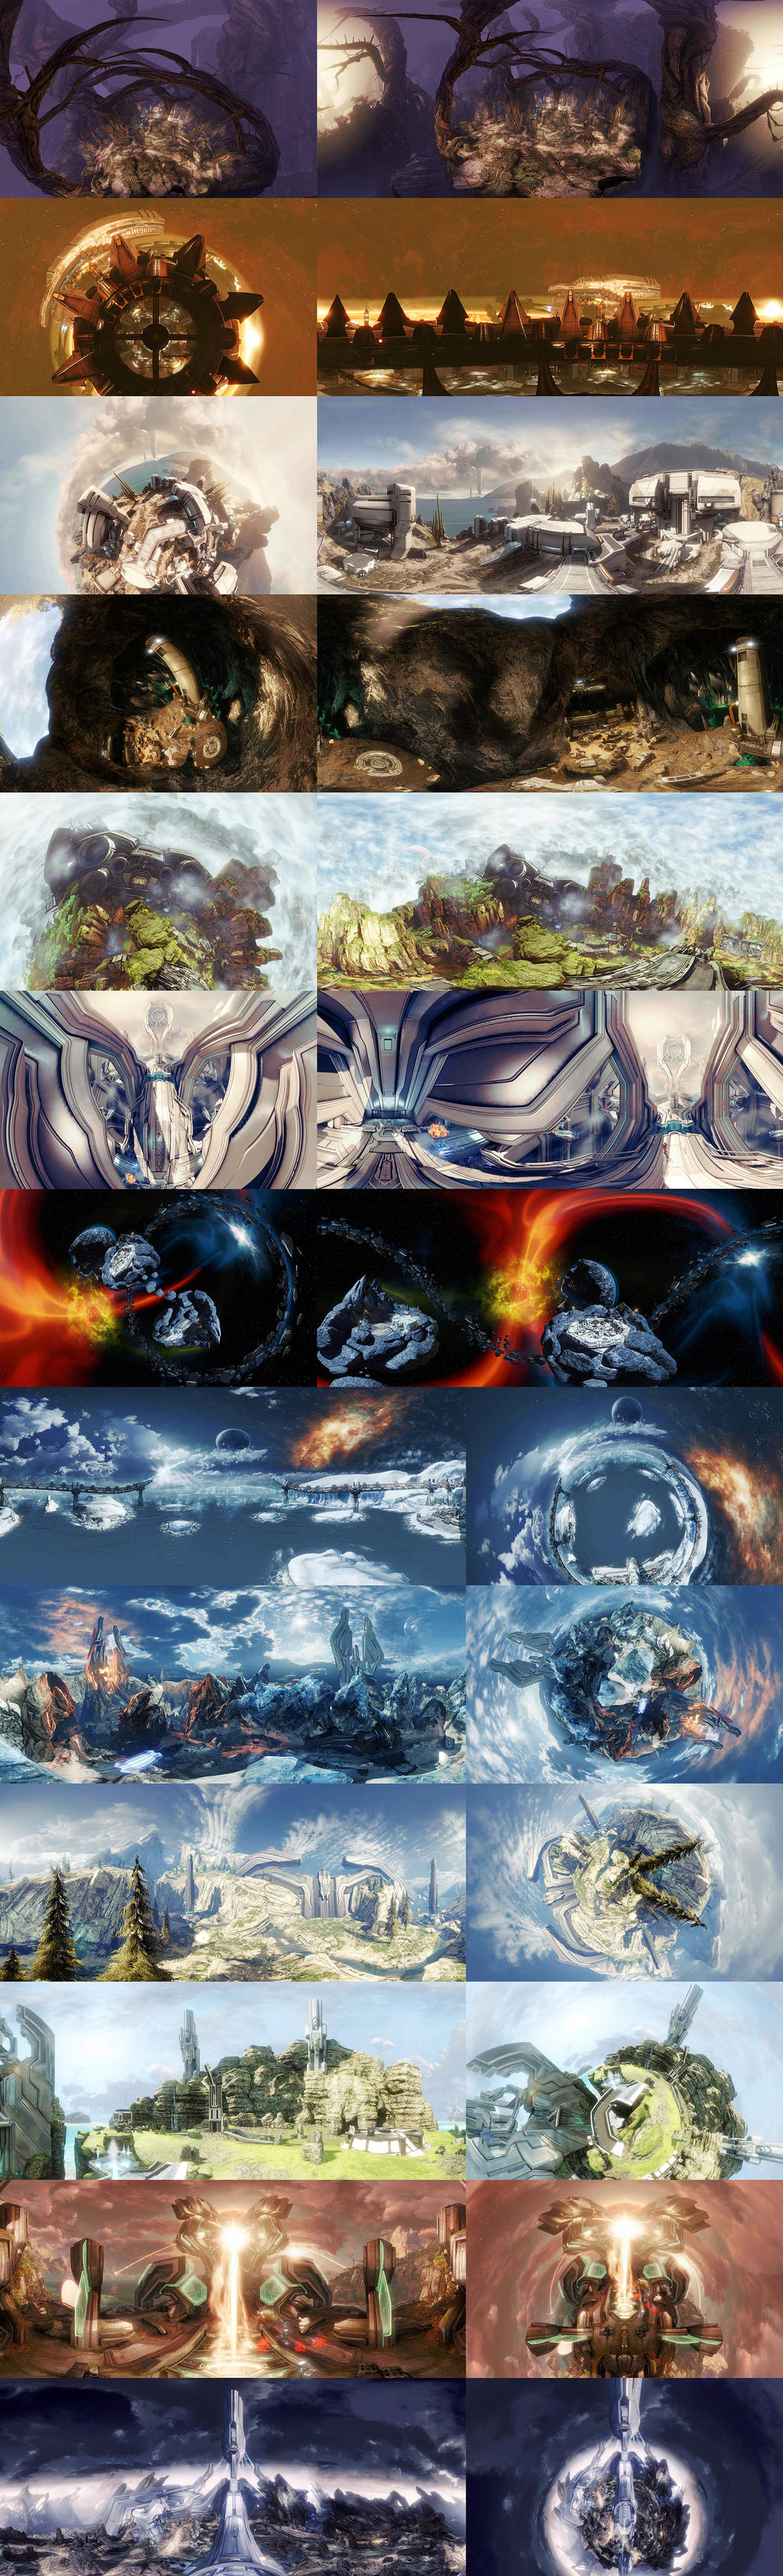 Halo Worlds Wallpaper Pack by snapshot19